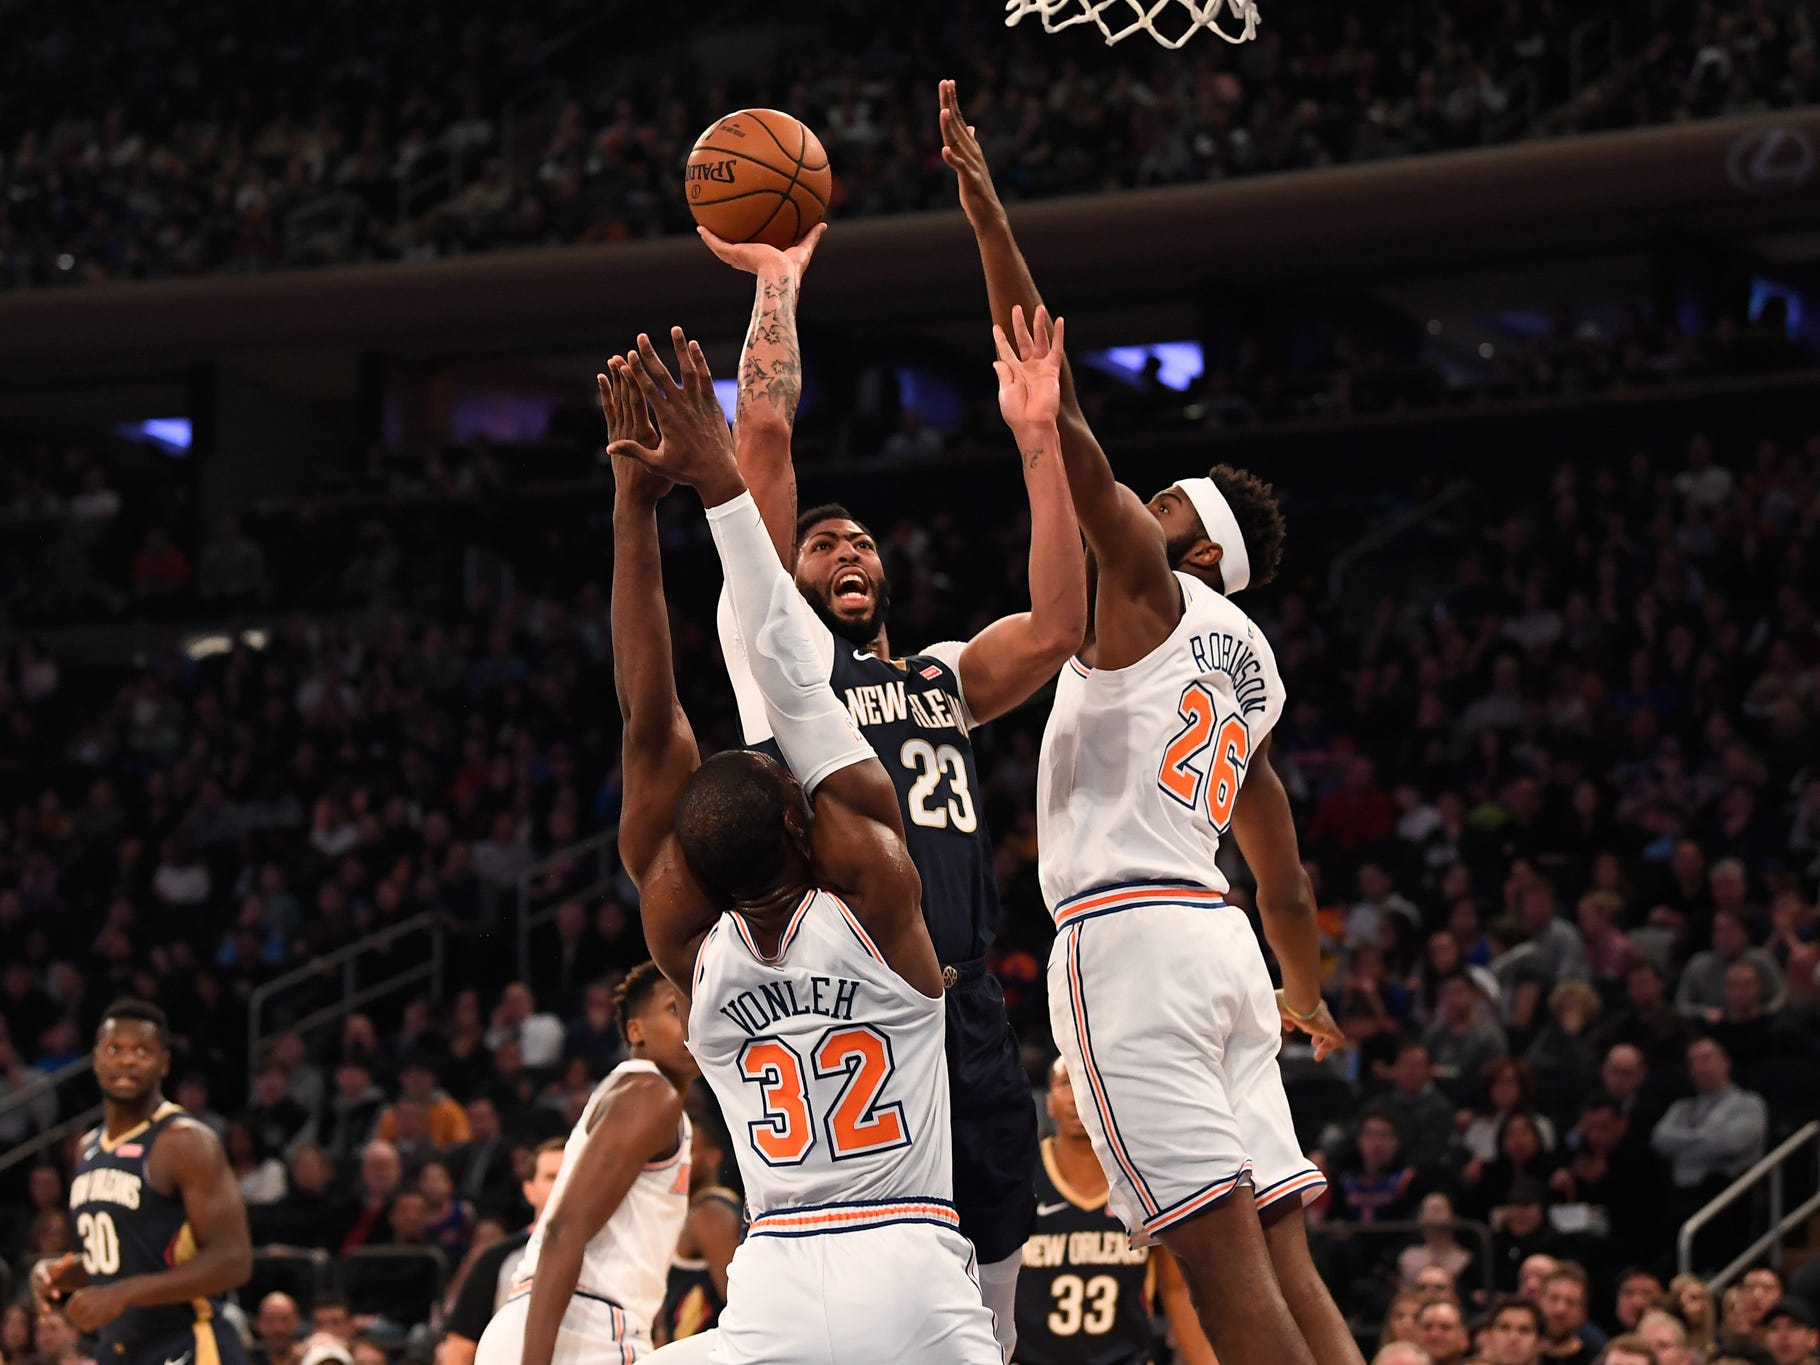 Nov 23, 2018; New York, NY, USA; New Orleans Pelicans forward Anthony Davis (23) shoots the ball over New York Knicks forward Noah Vonleh (32) and center Mitchell Robinson (26) in the first quarter at Madison Square Garden.